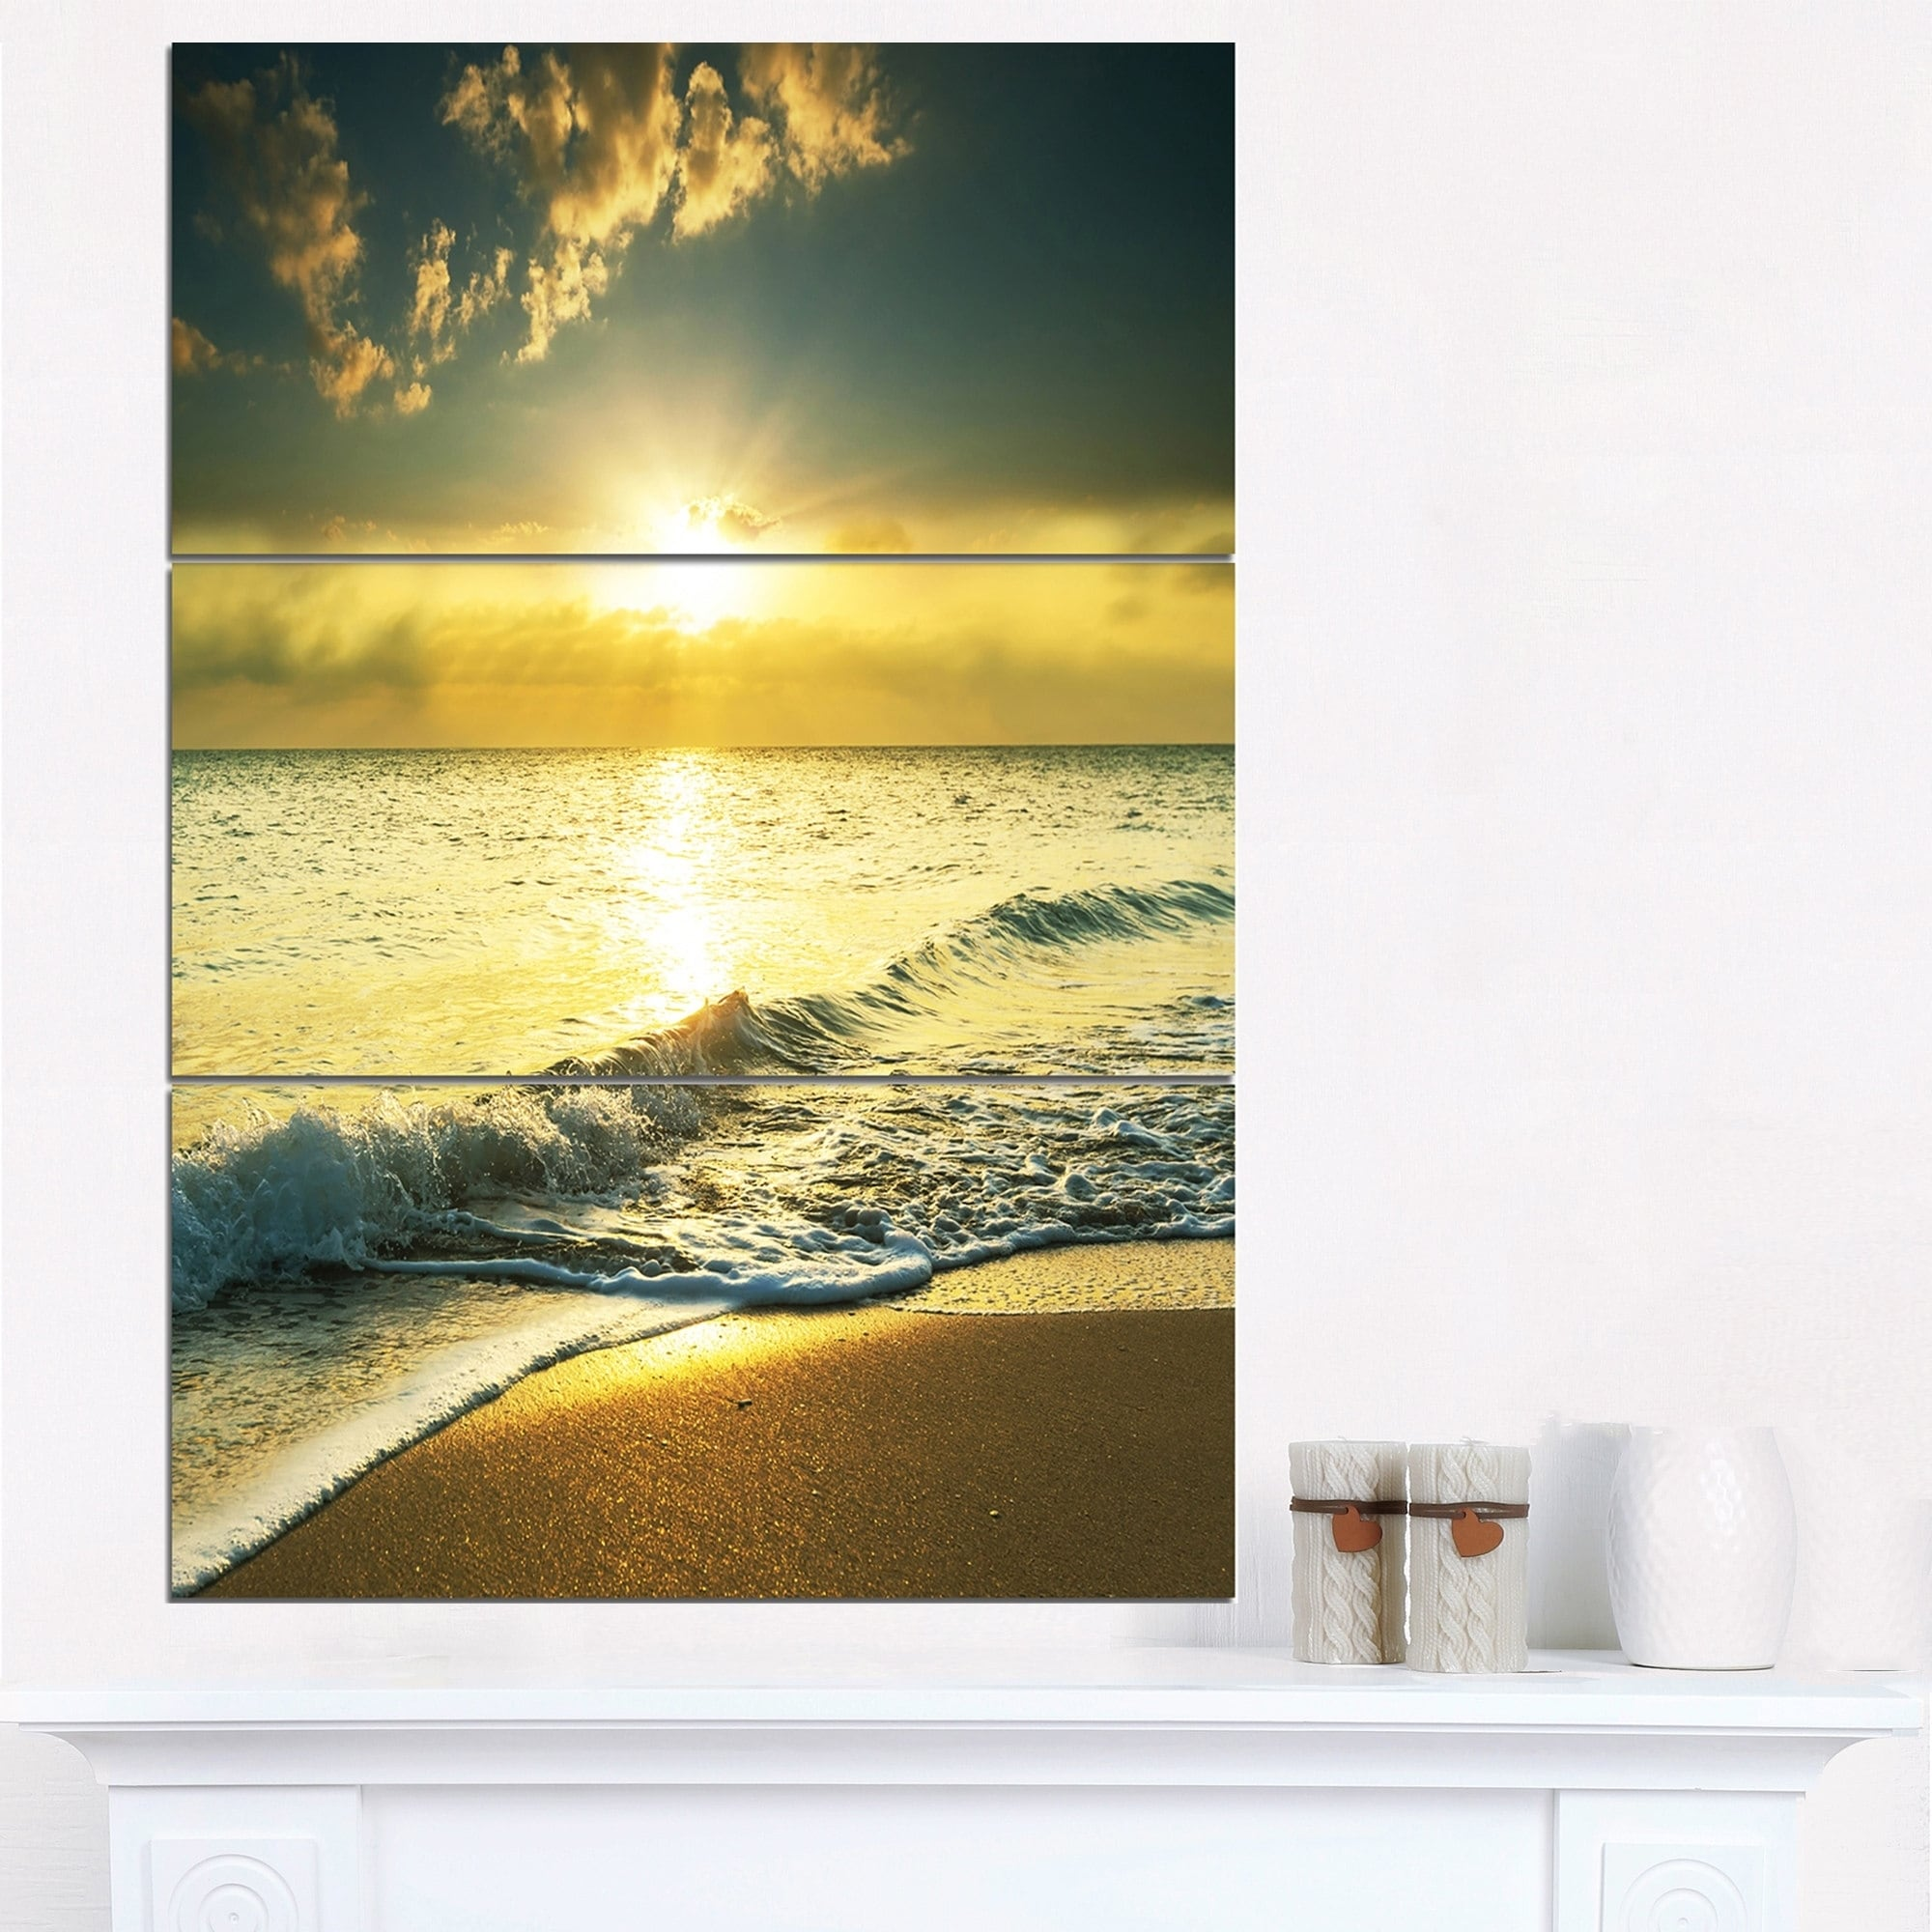 Unusual Jcpenney Metal Wall Decor Contemporary - The Wall Art ...